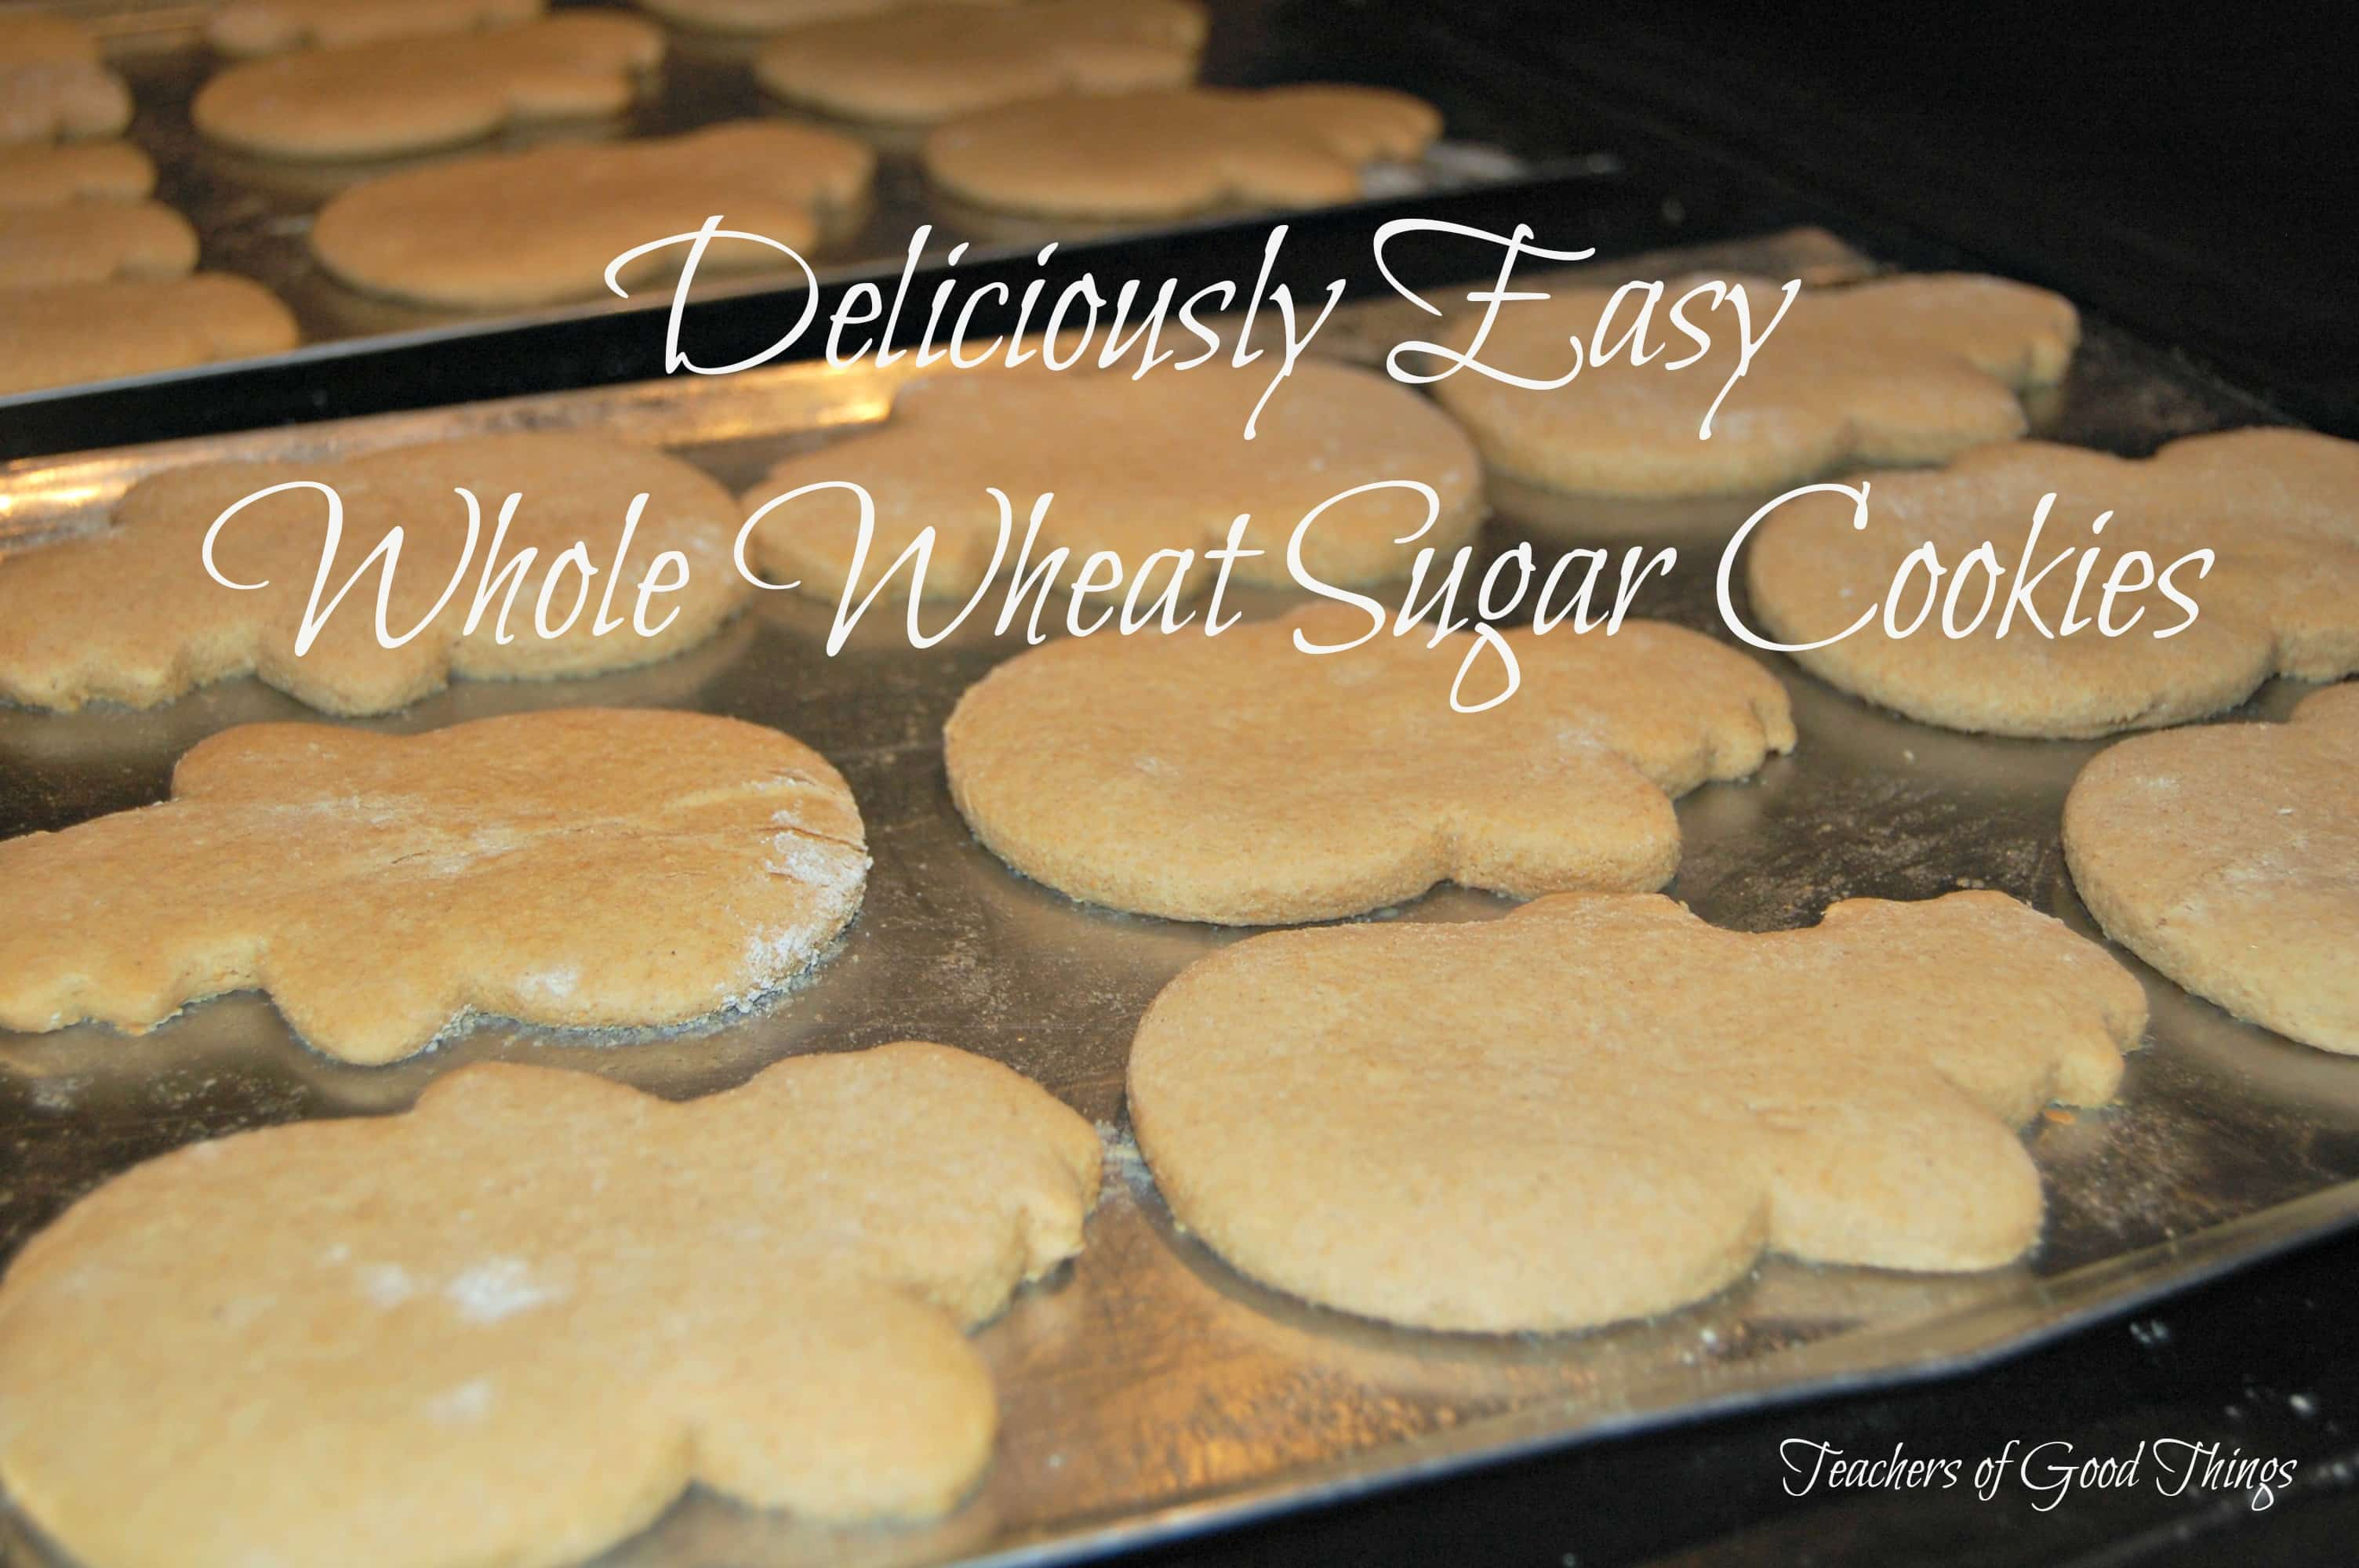 Deliciously Easy Whole Wheat Sugar Cookies